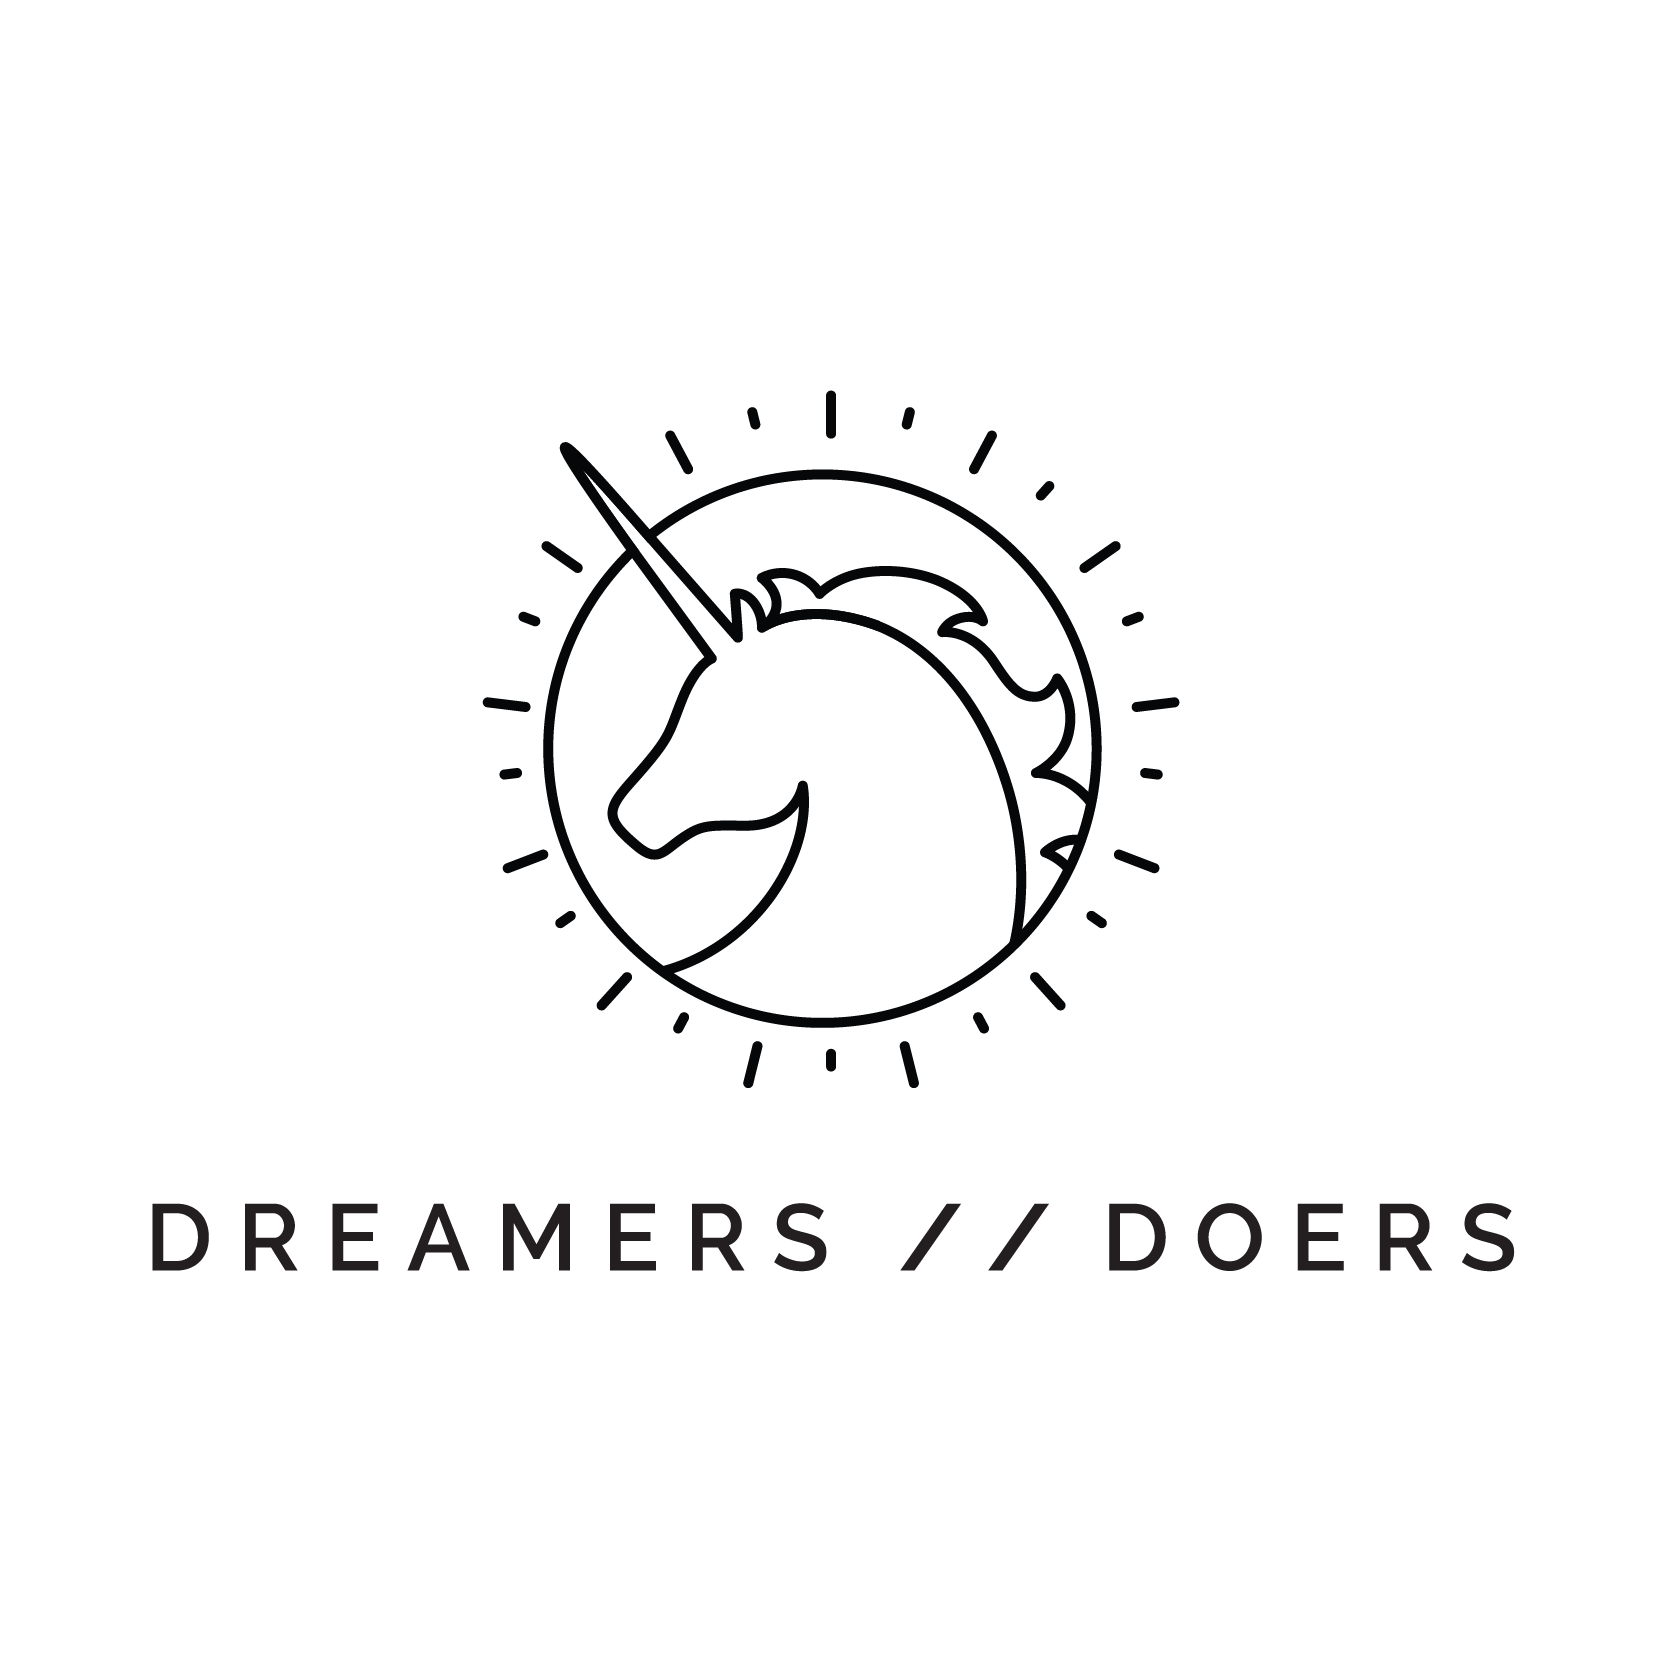 Dreamers-Doers.png